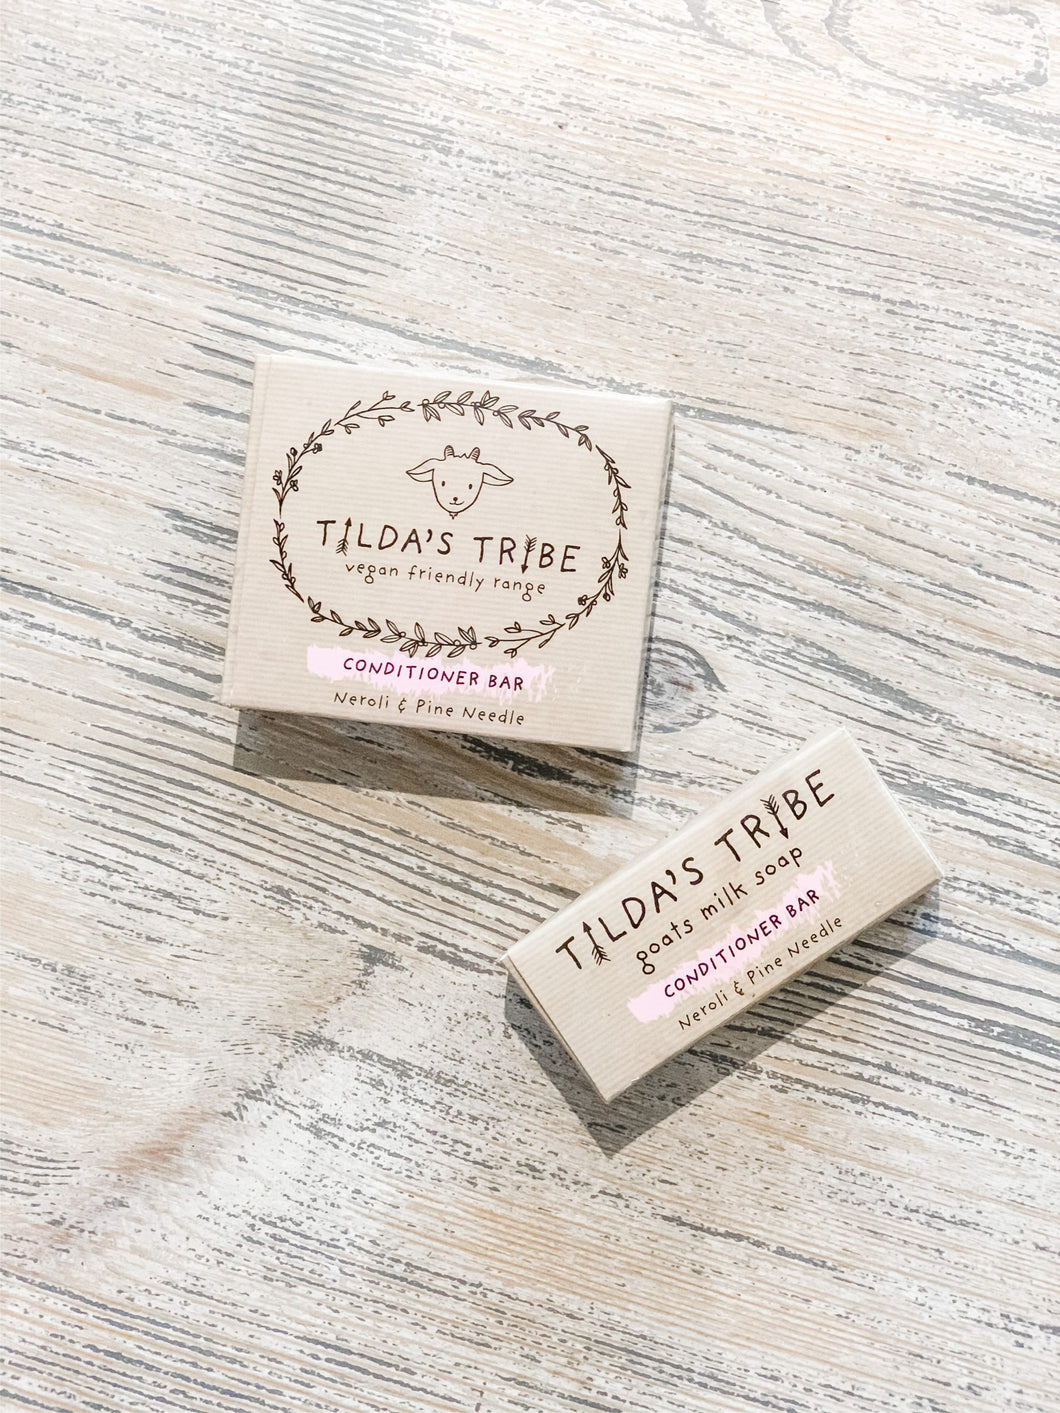 Tilda's Tribe Conditioner Bar